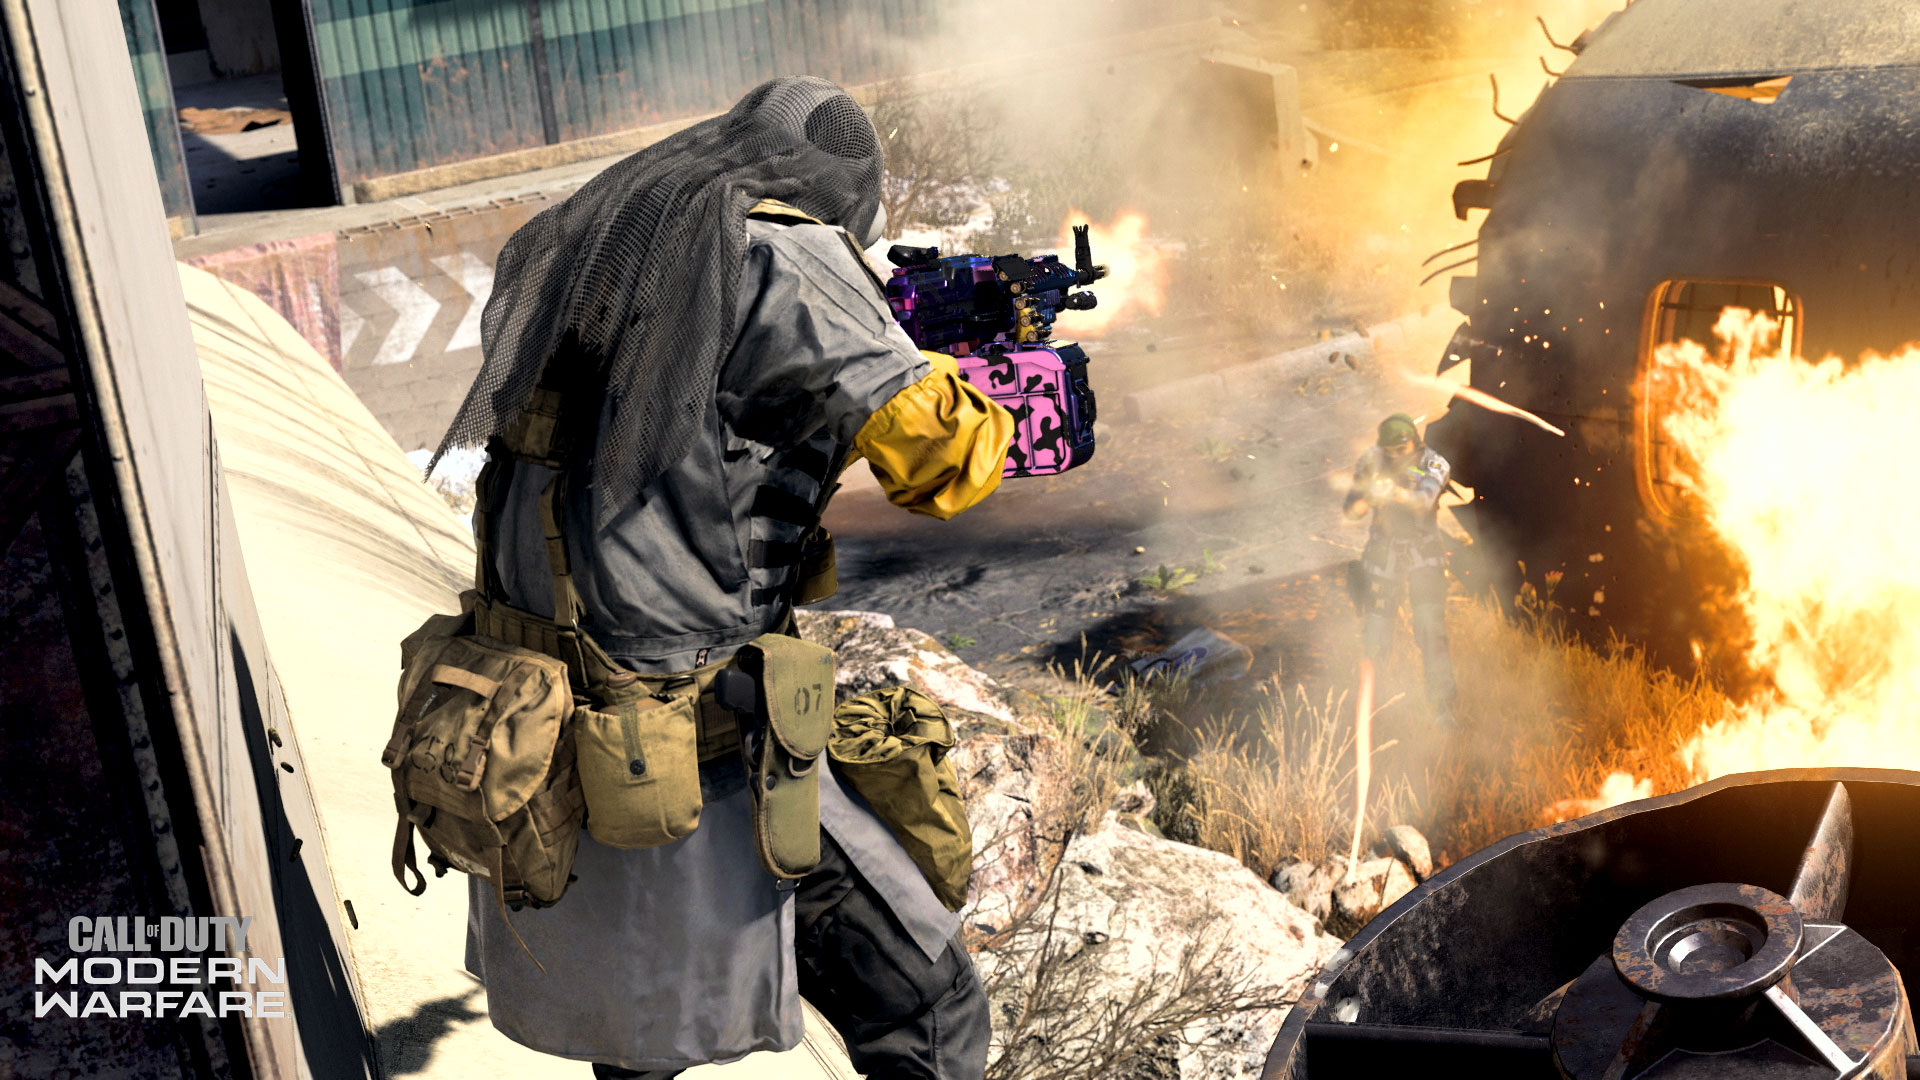 Experience Modern Warfare Multiplayer and Gunfight, Free-for-Everyone during the Free Access Multiplayer Weekend - Image 4